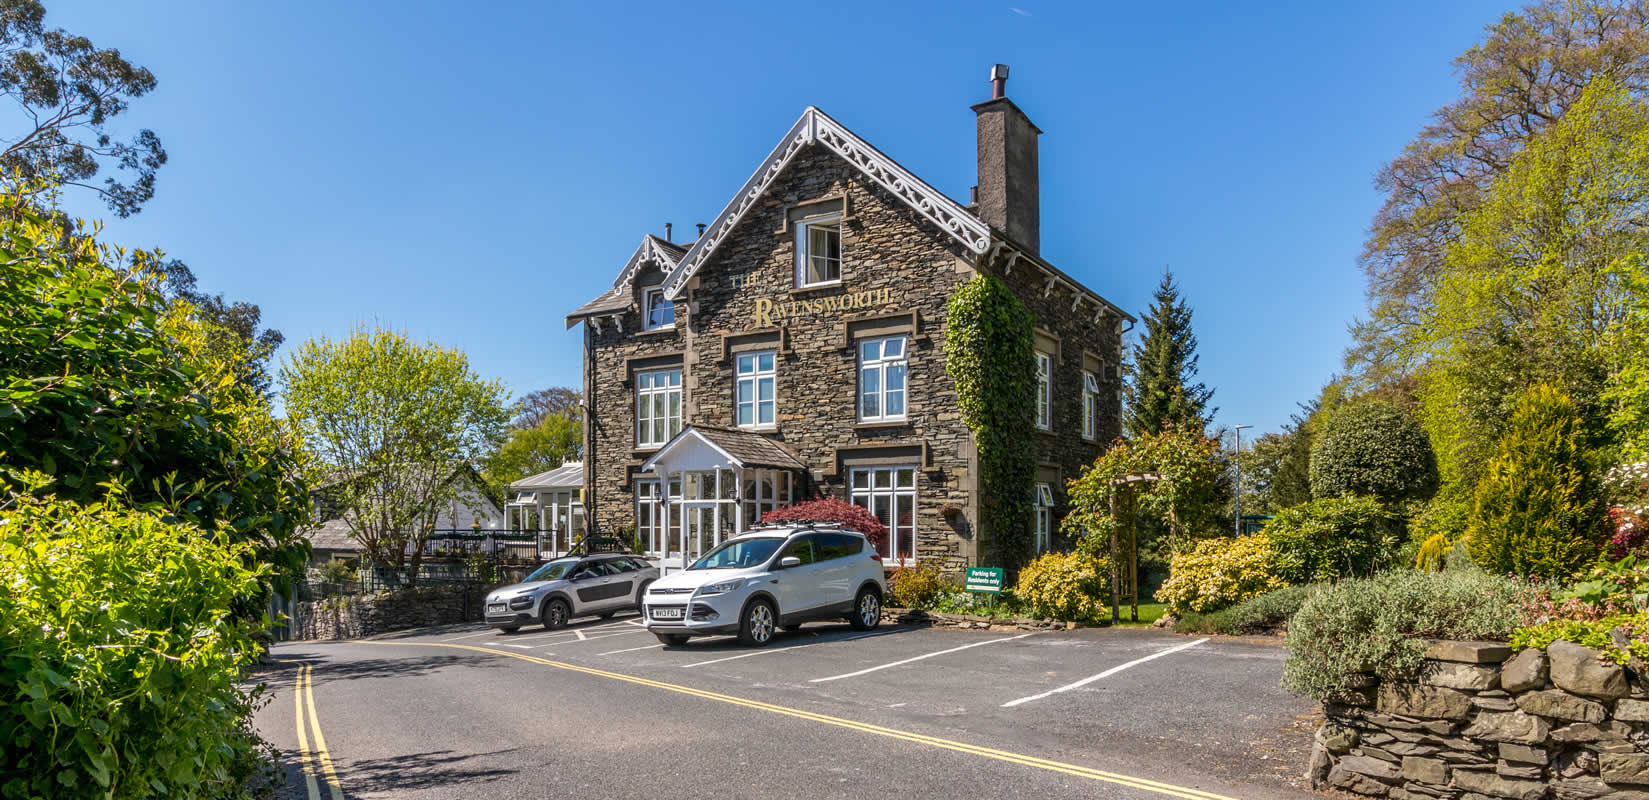 Lake District booming, but please book direct with accommodation for the best prices and deals